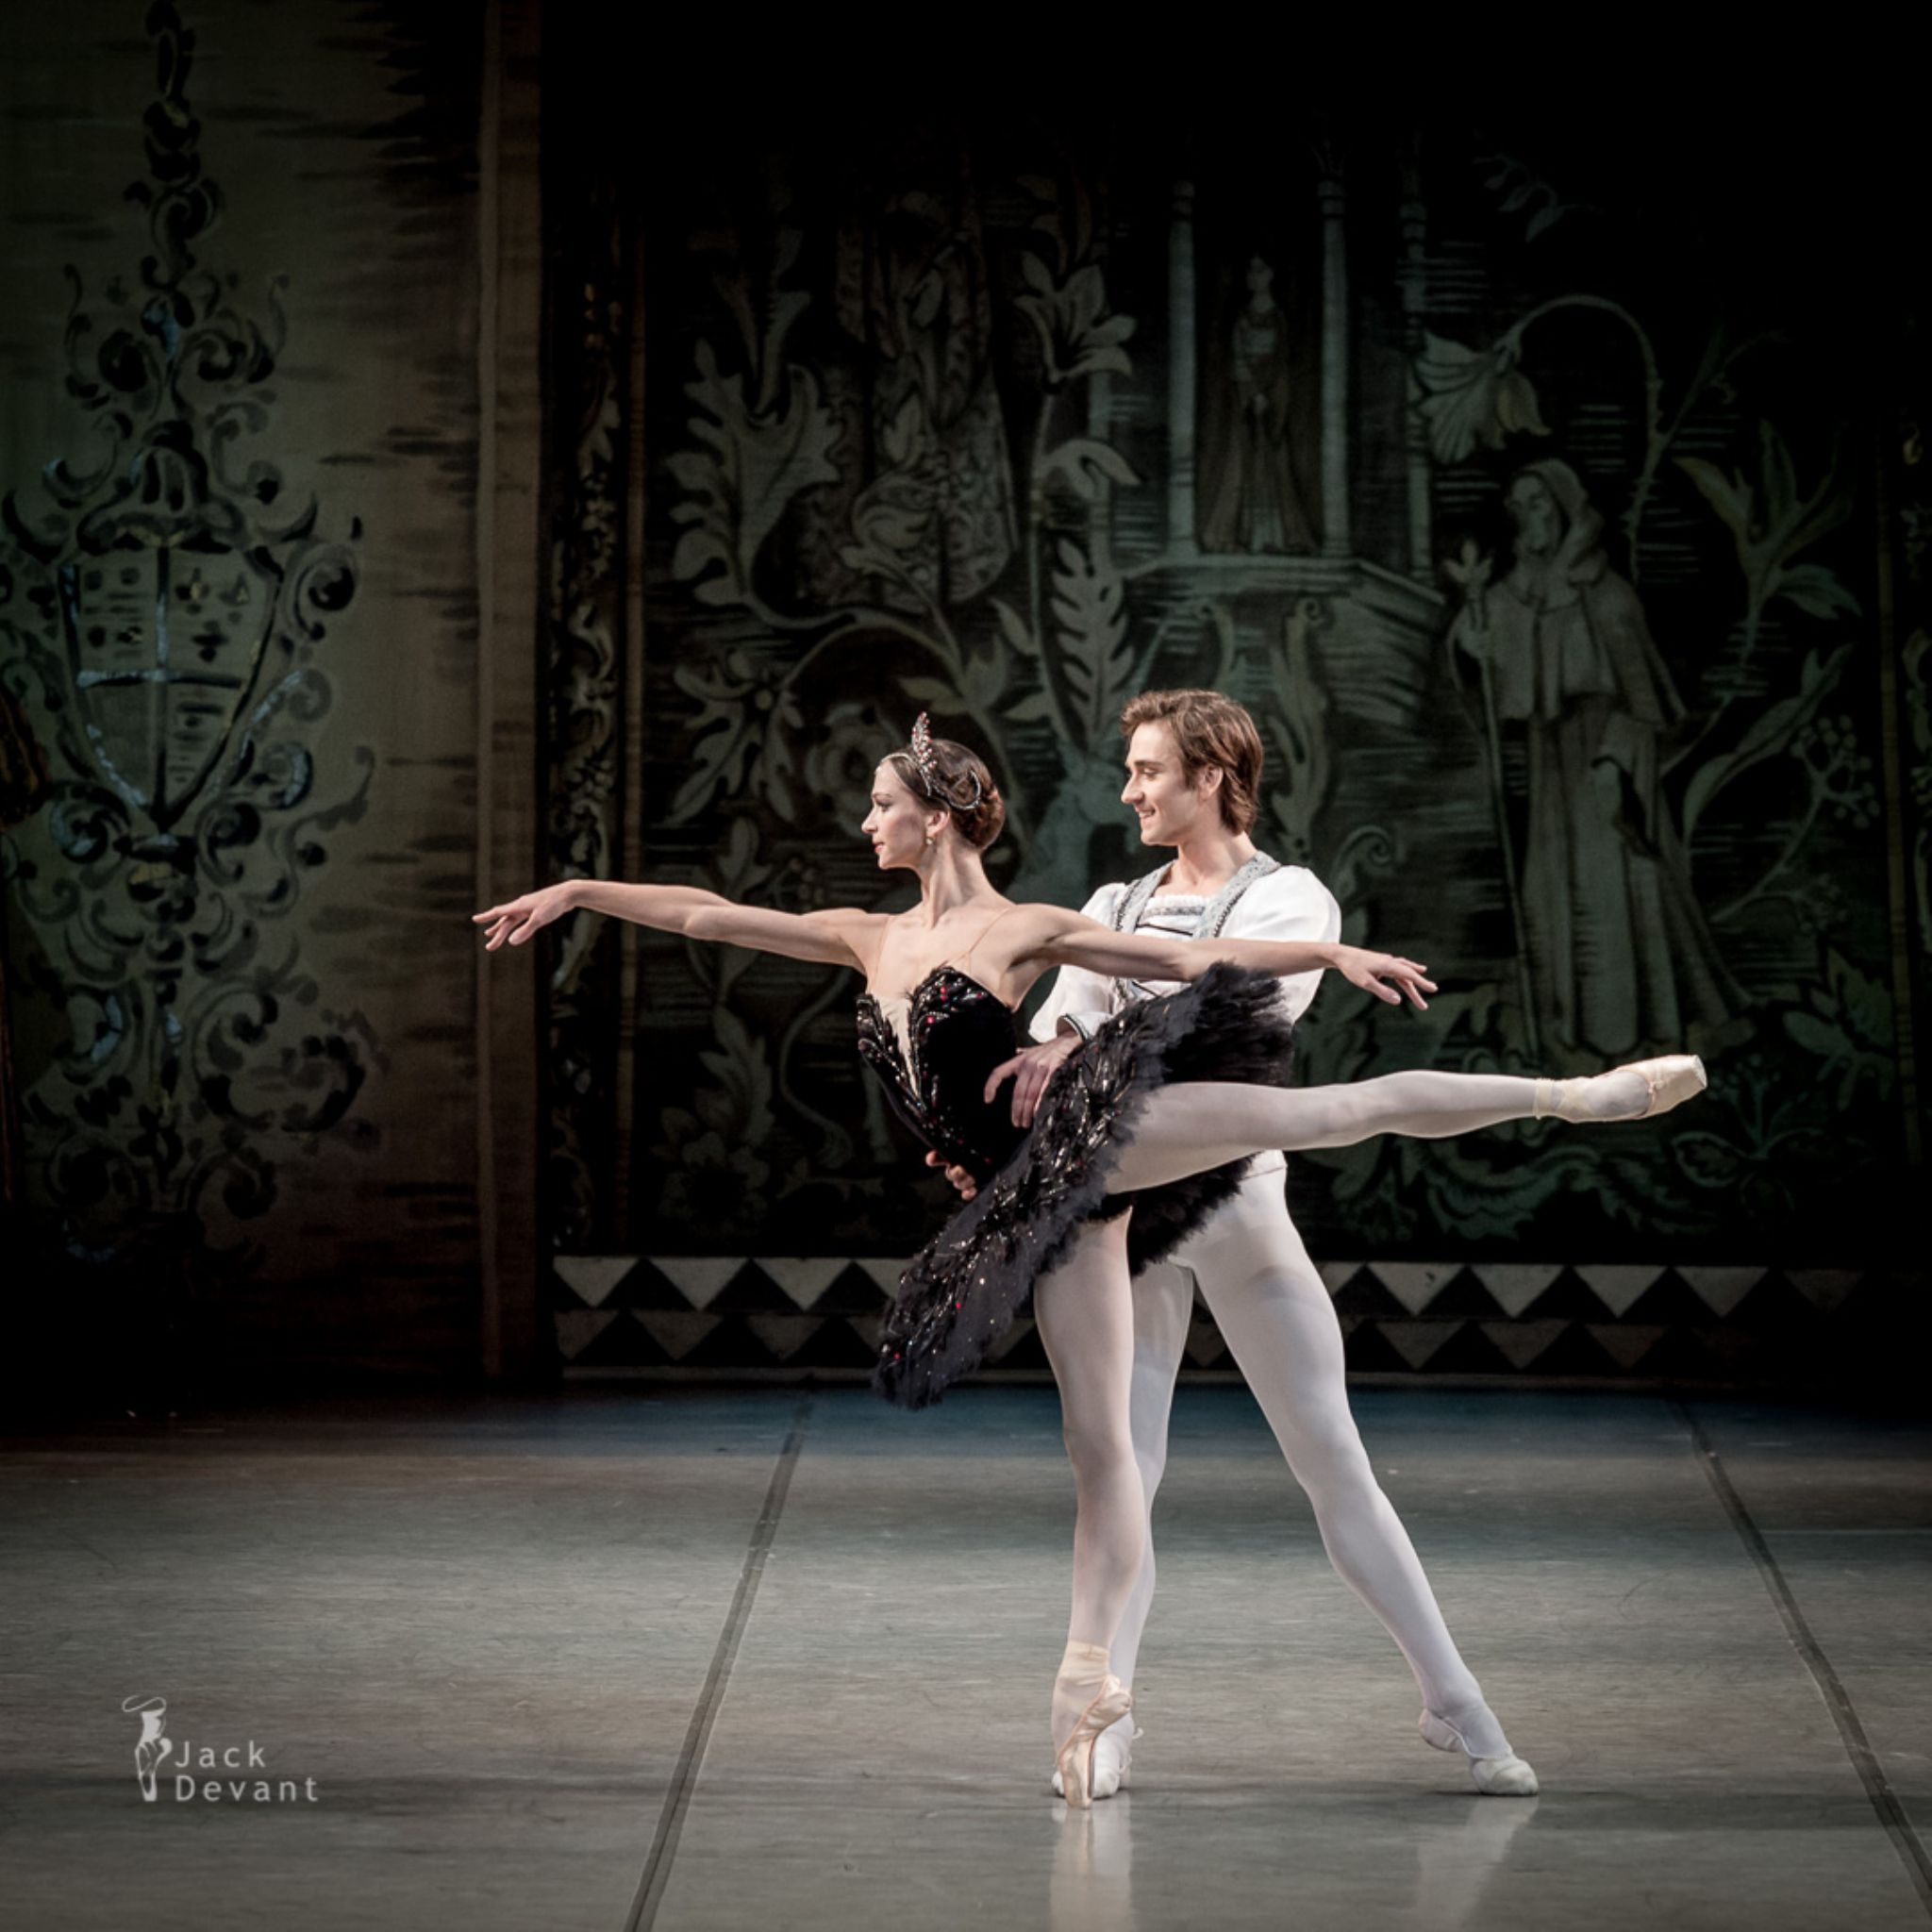 Swan Lake - Polina Semionova and Friedemann Vogel by Jack Devant